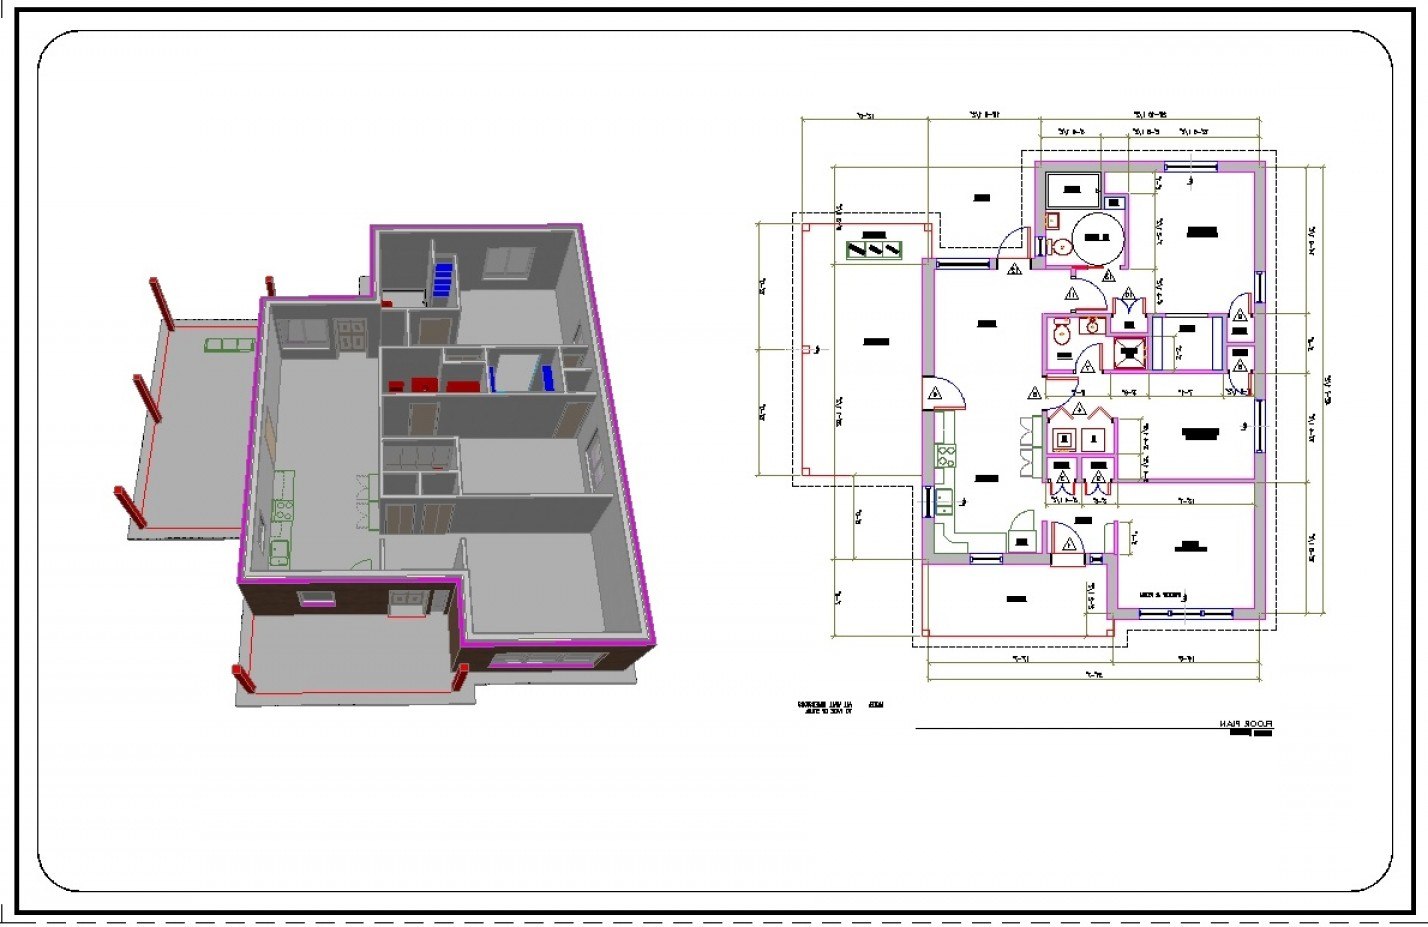 Falcon 50 Vector 2D CAD Drawings: Convert Hand Drawn Floor Plans To Cad Pdf